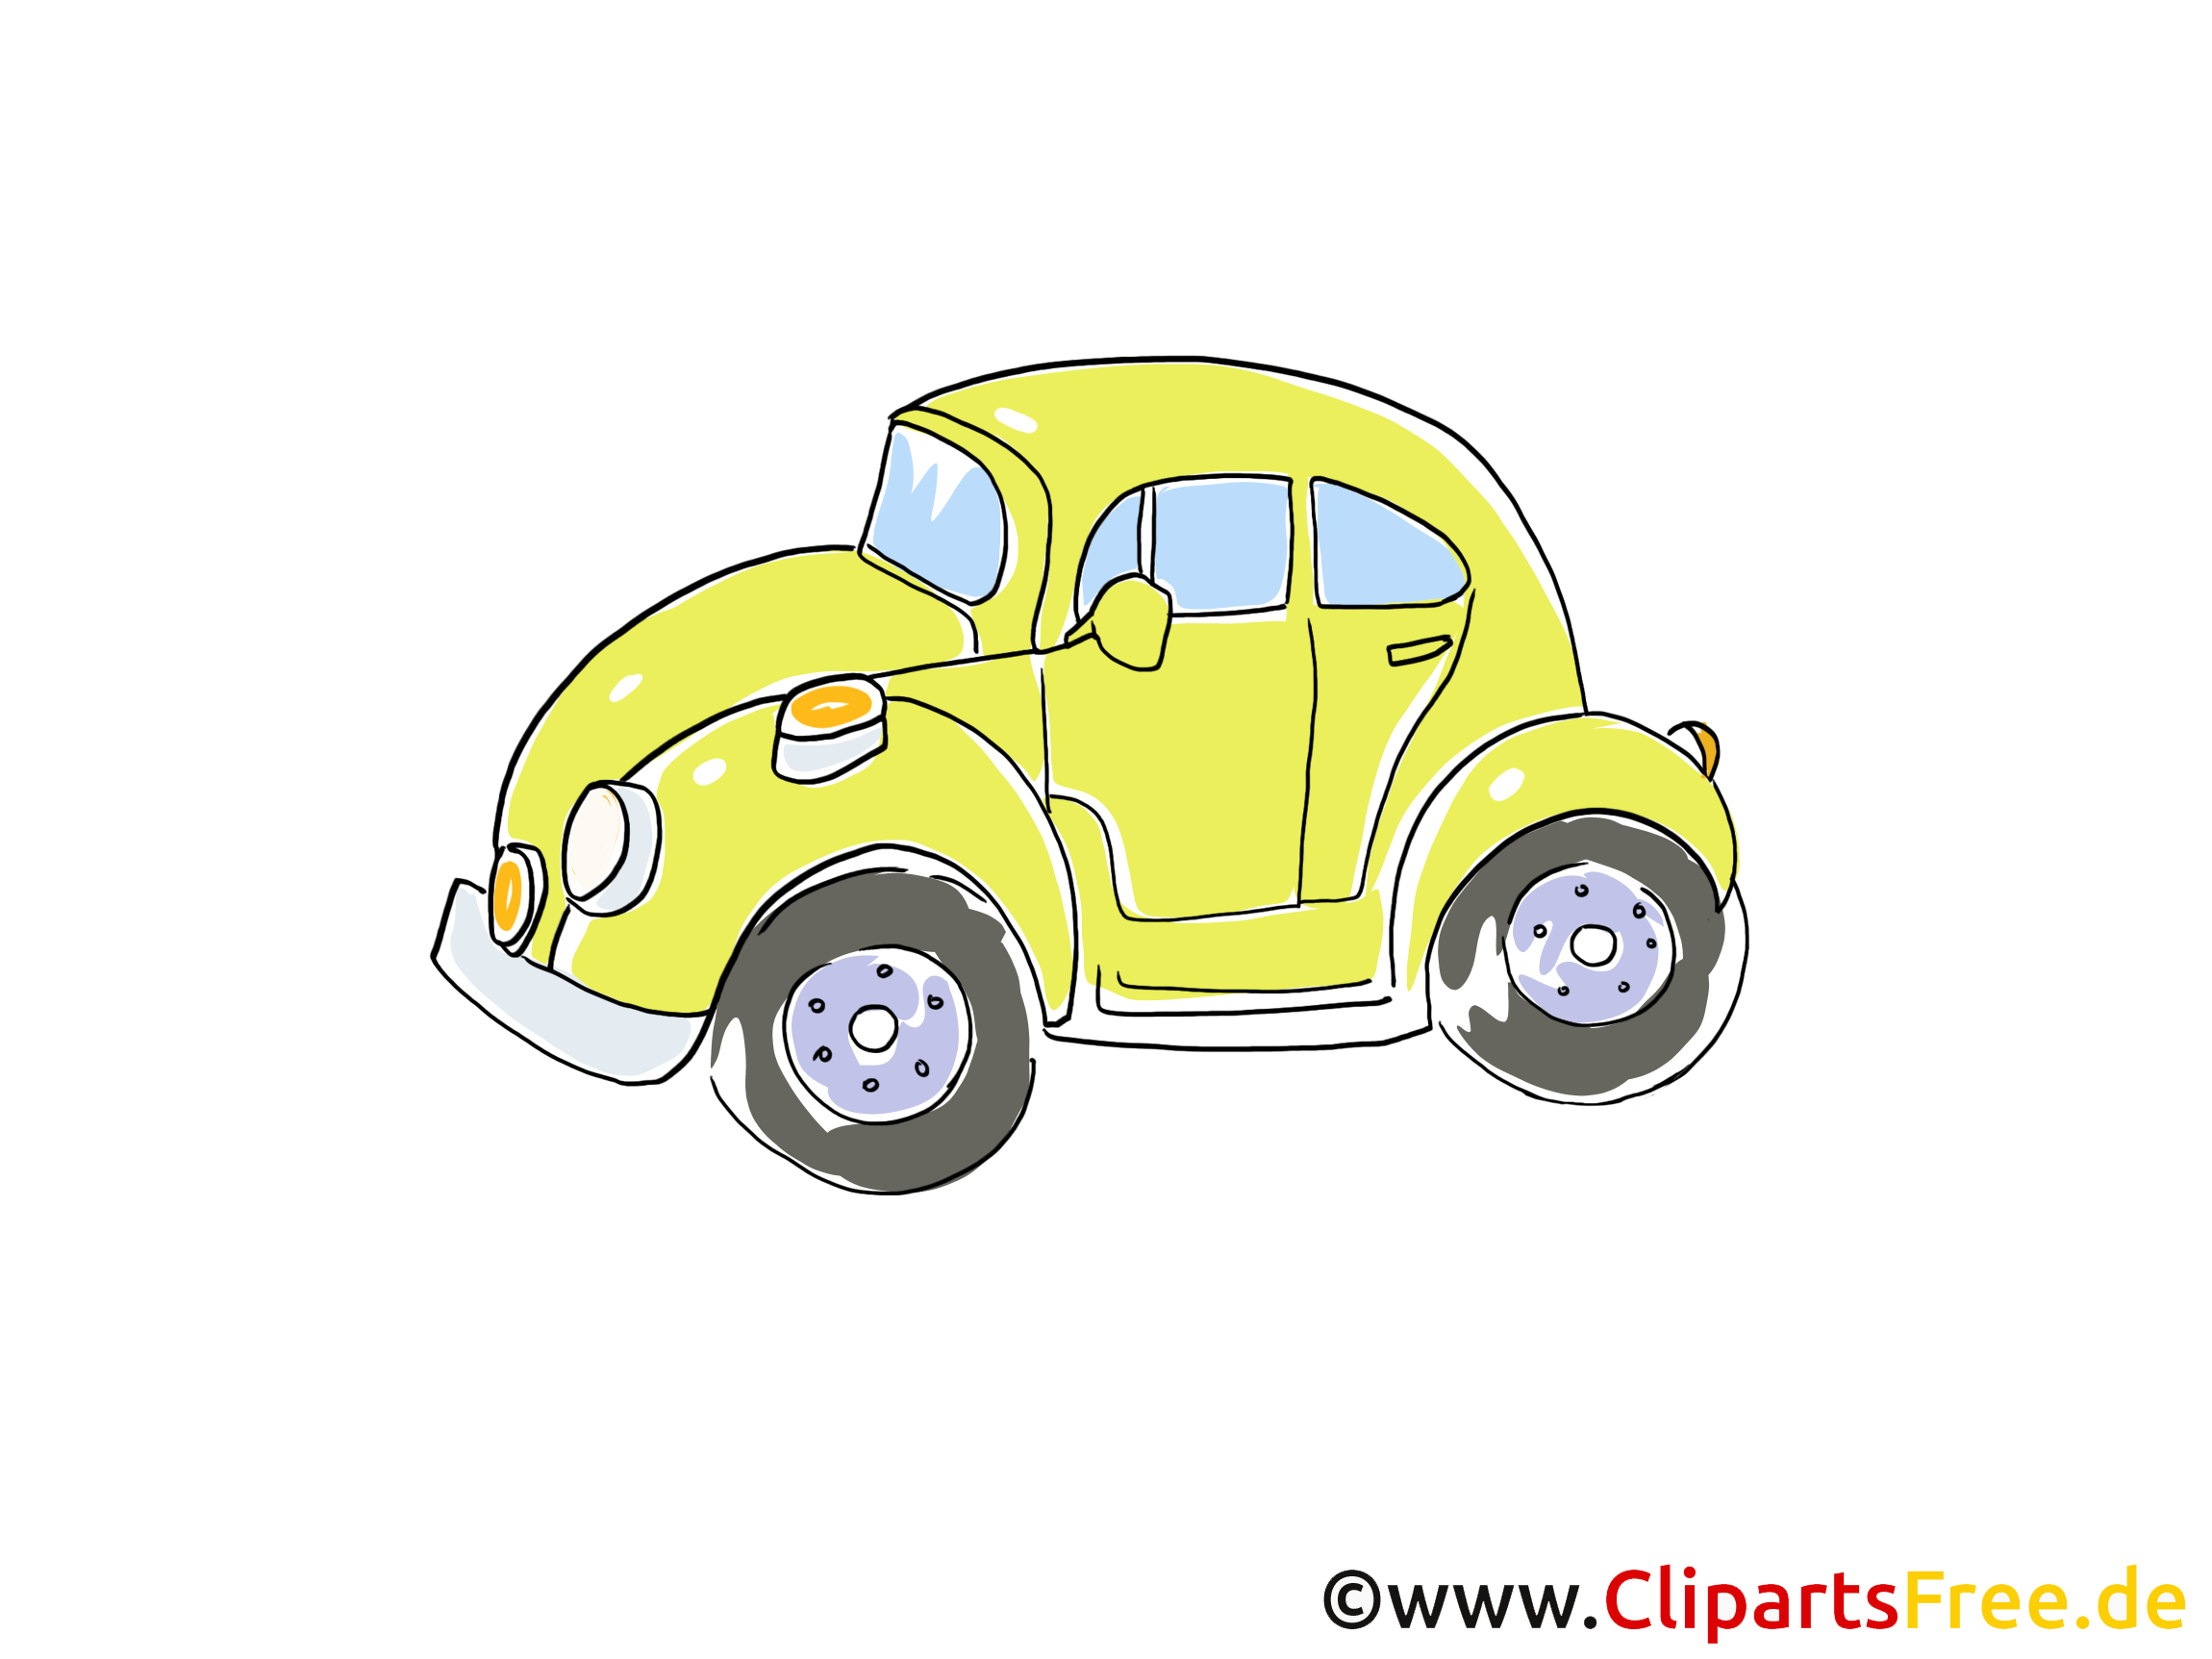 Flitzer Clipart, Bild, Cartoon, Comic, Grafik.